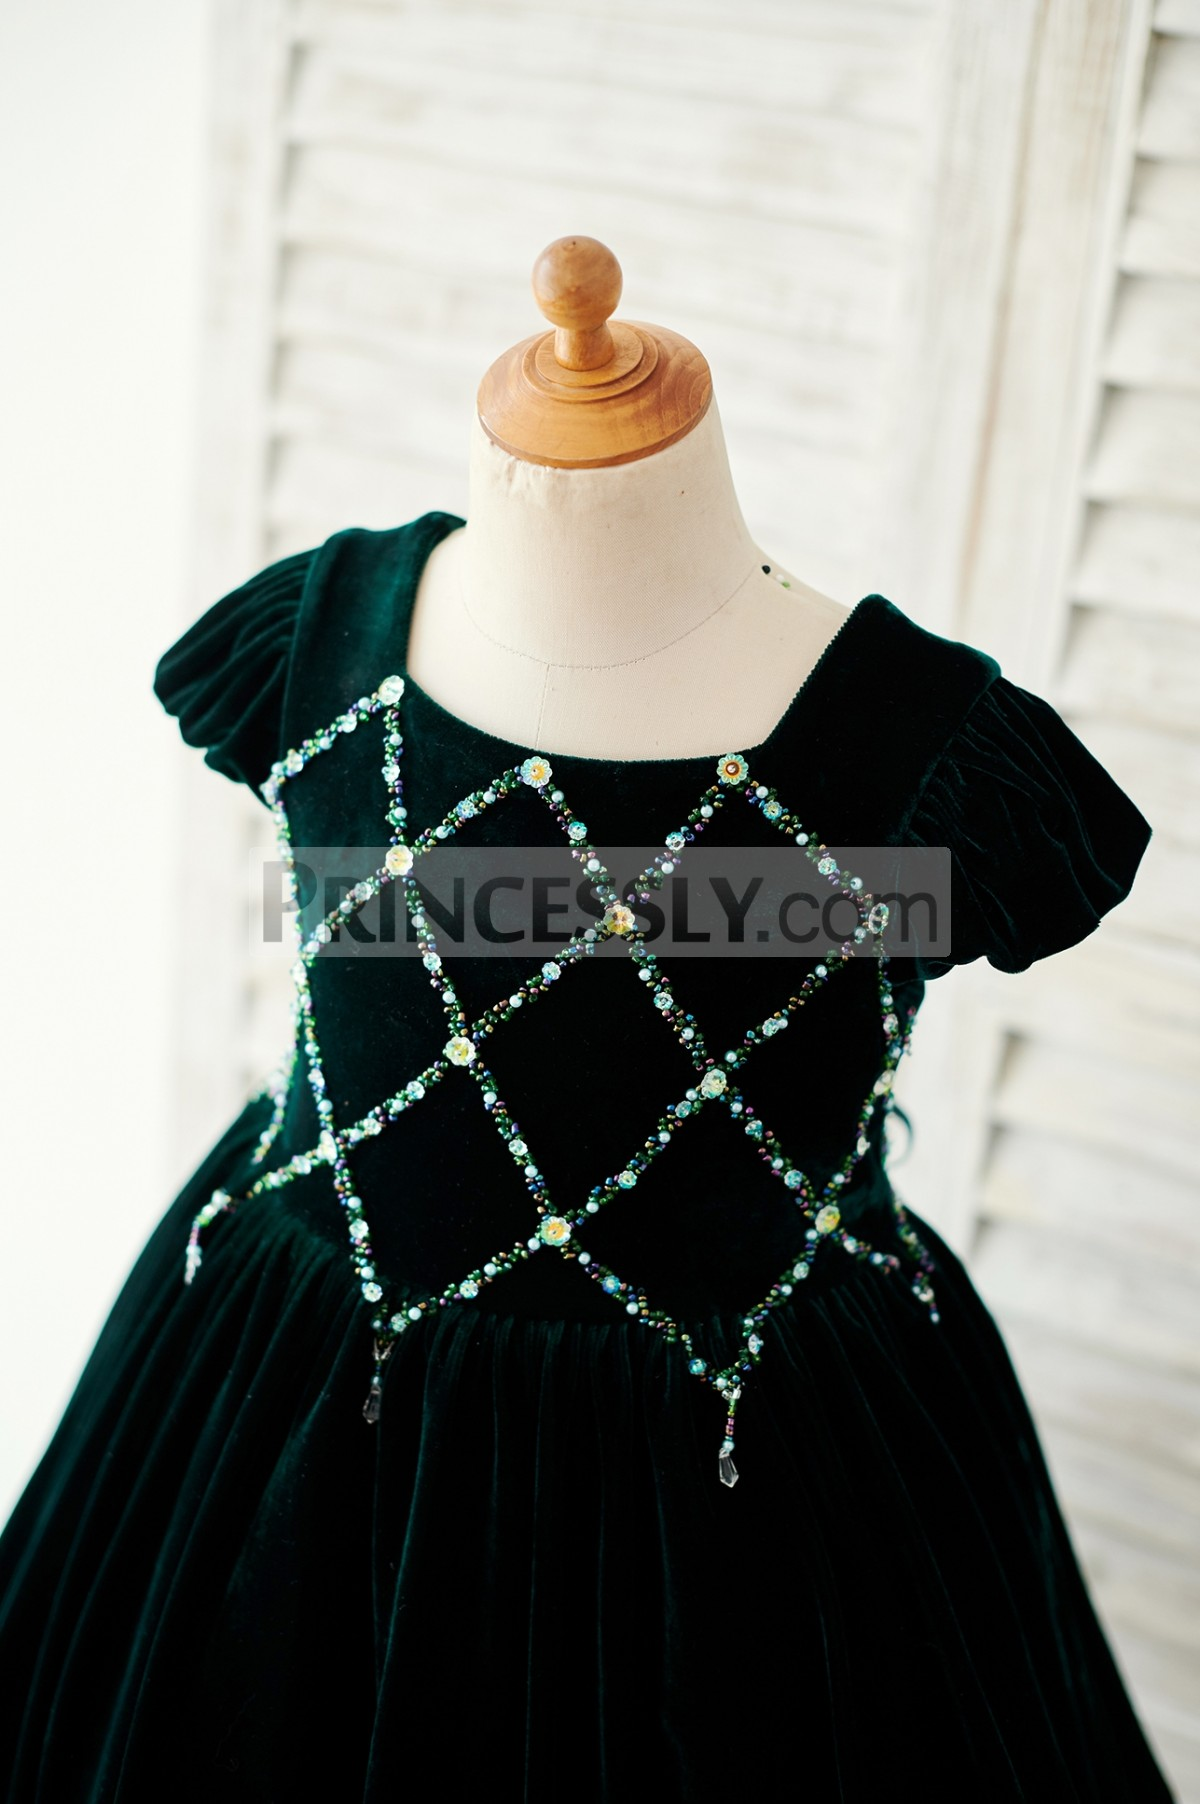 Square neck, puffy cap sleeves bodice with colorful beads